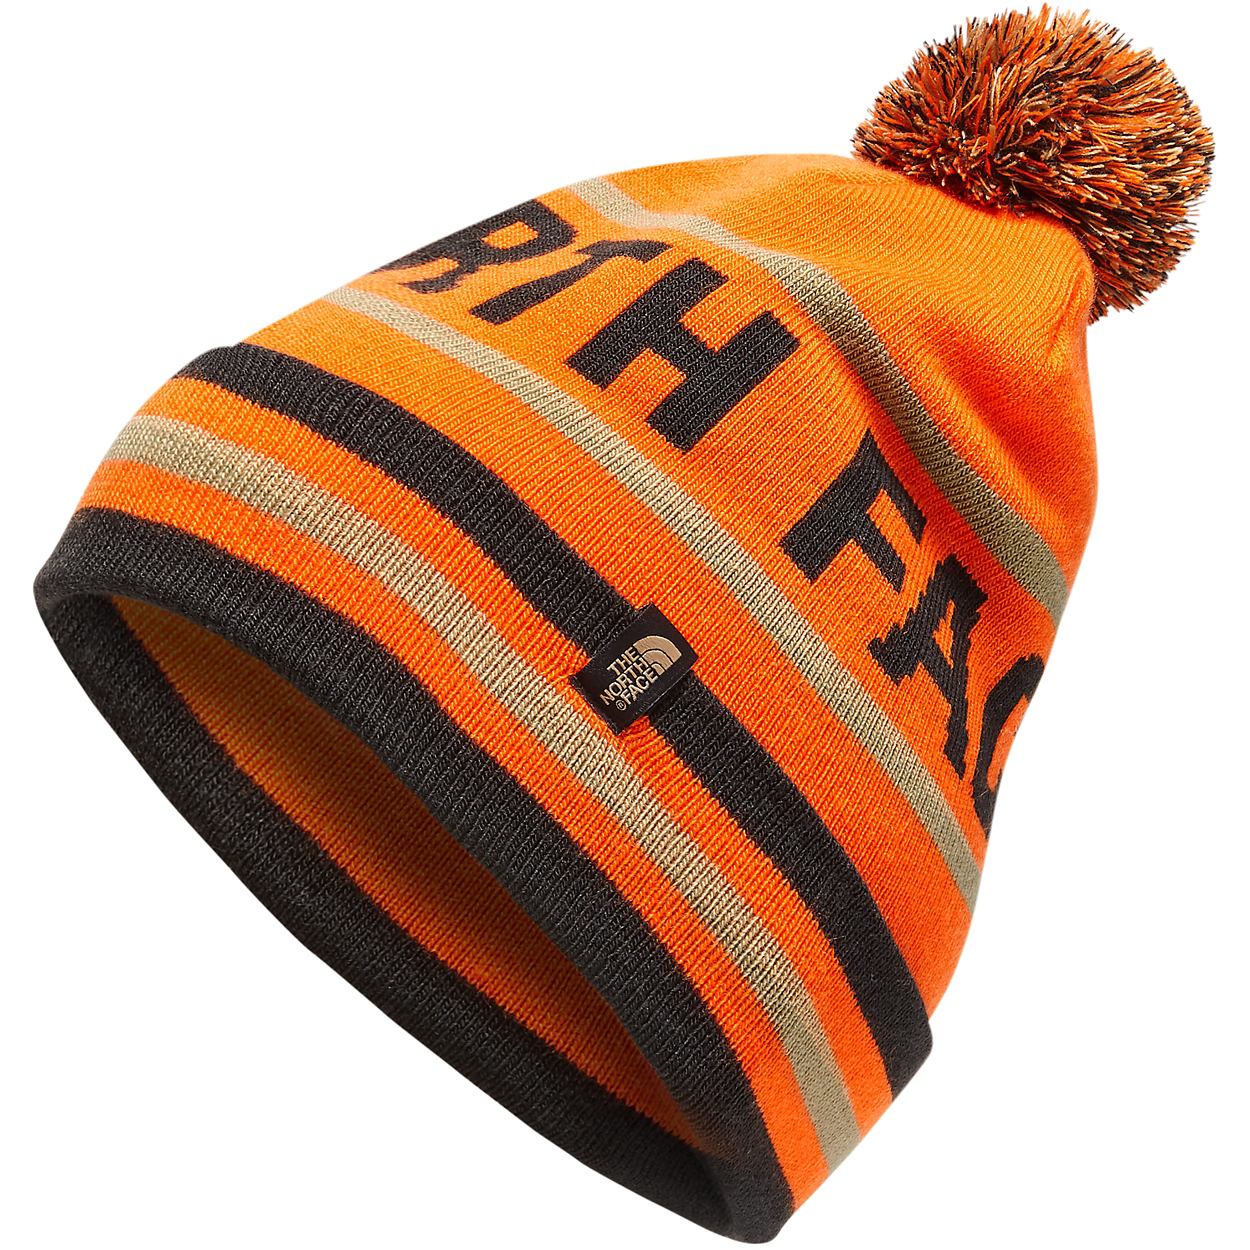 The North Face Men s Hats at MountainGear.com 6468c5a9ad1